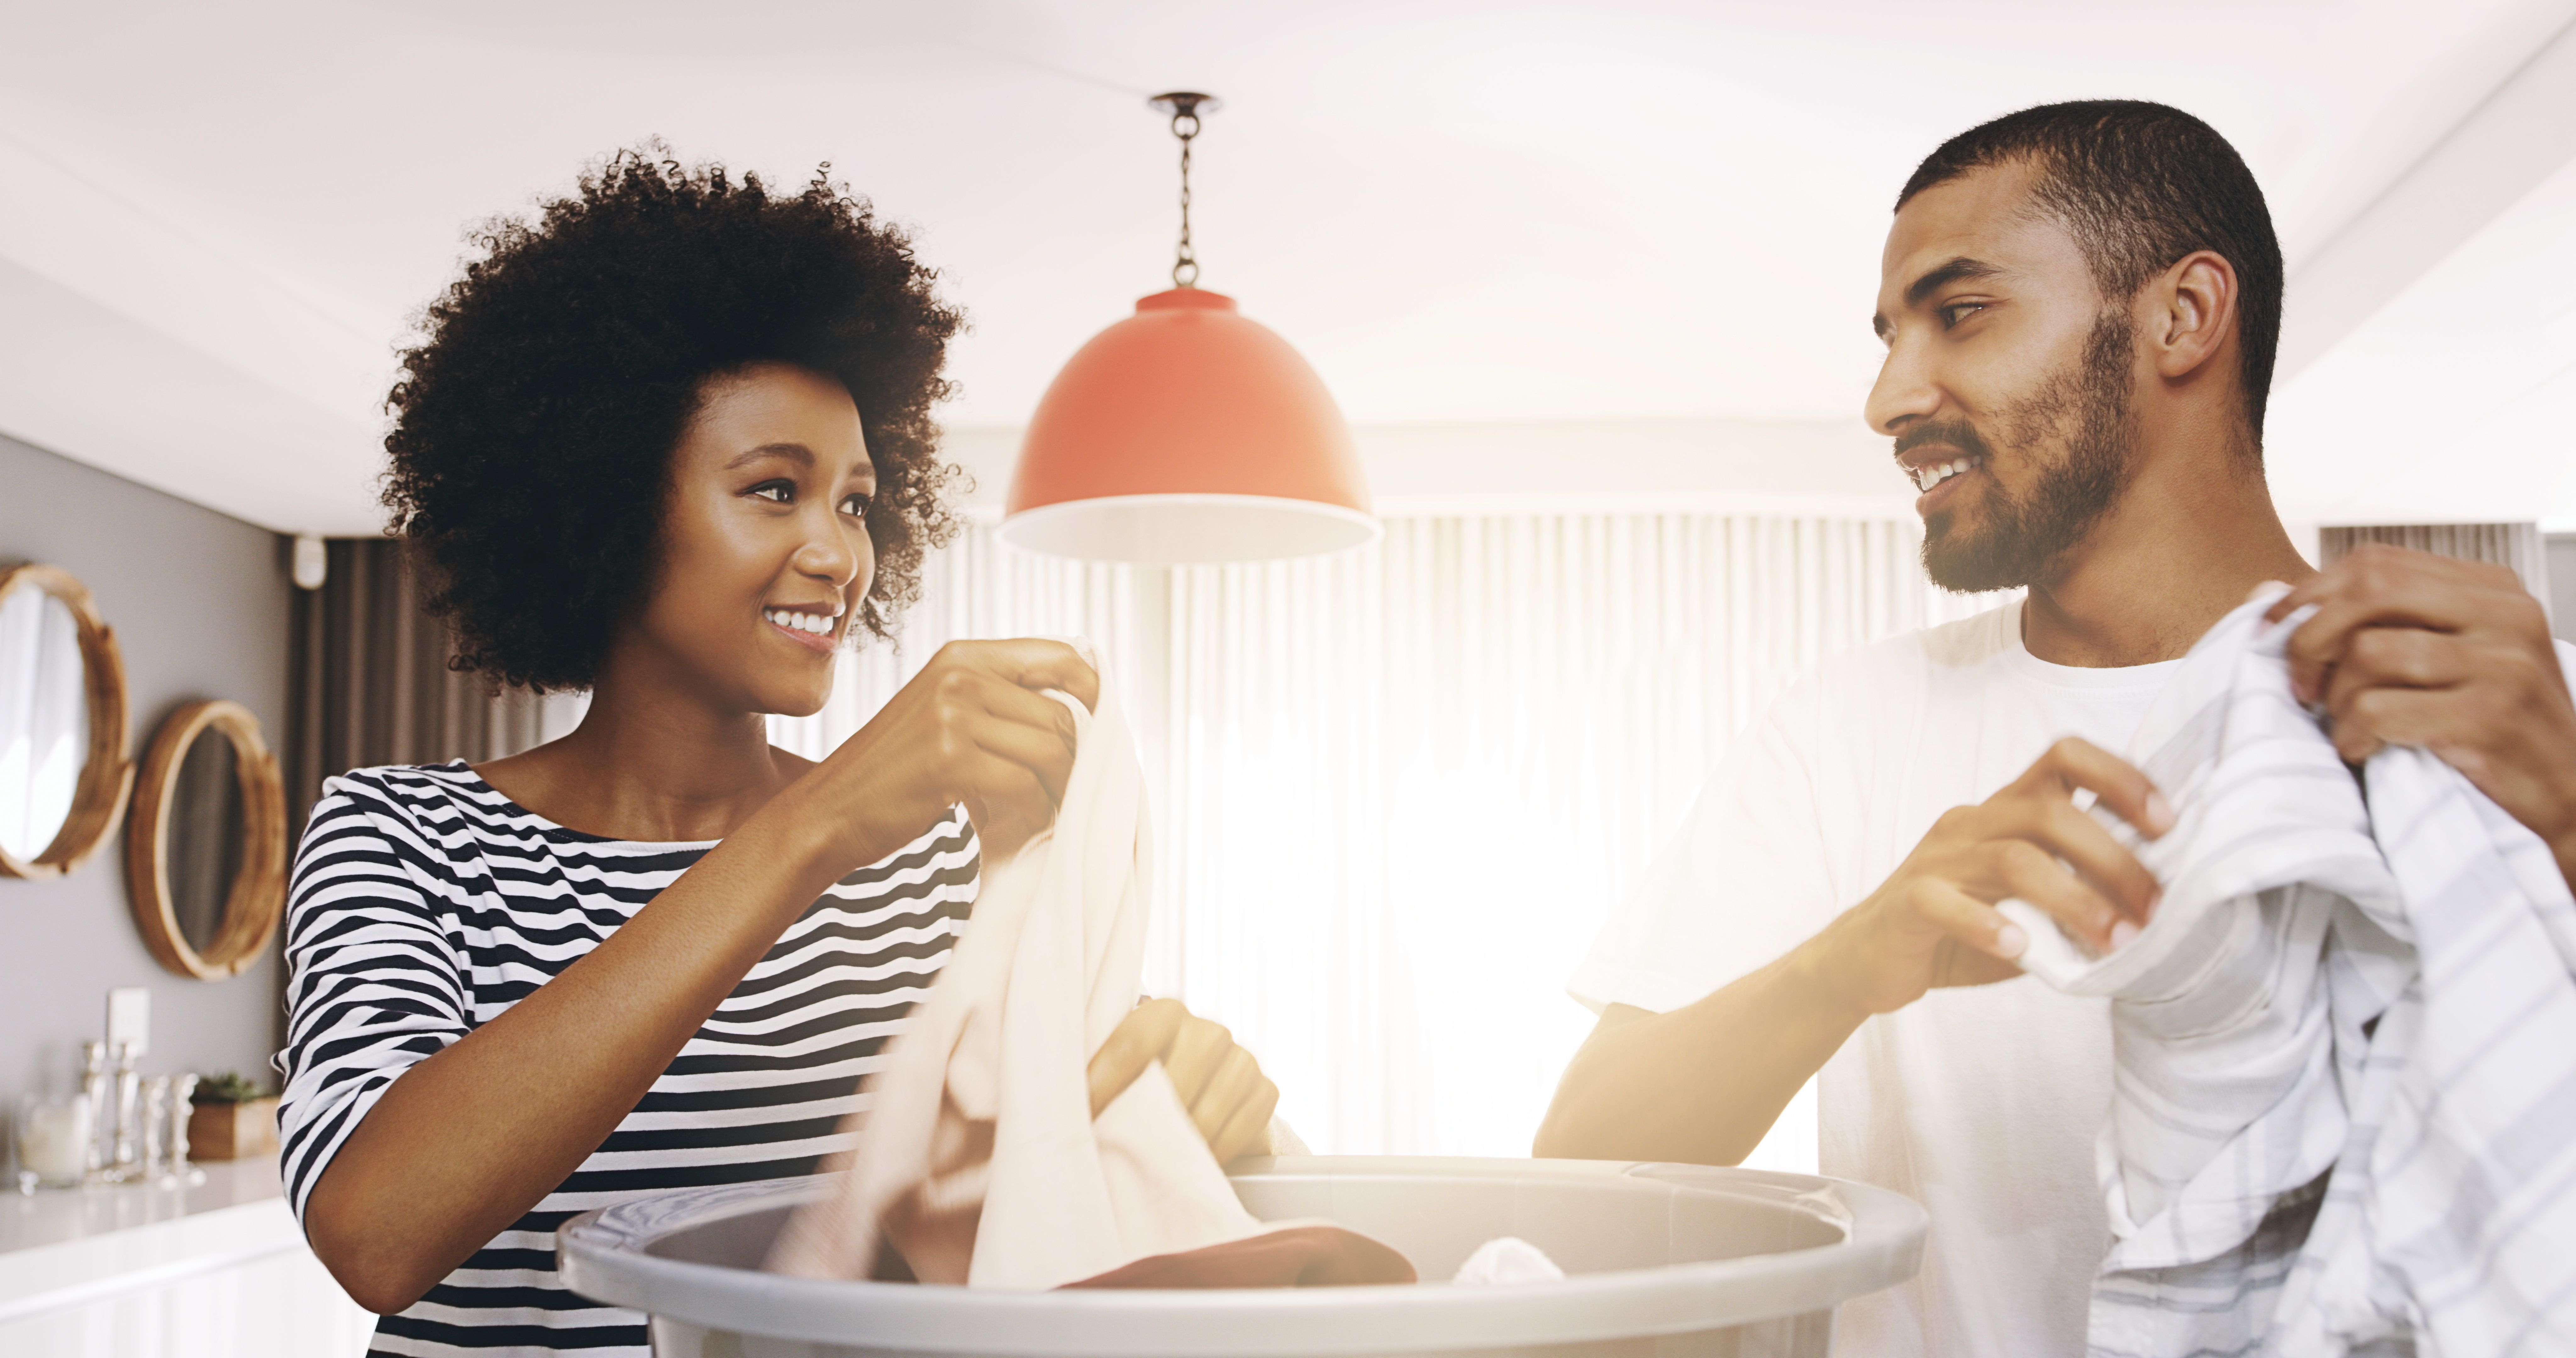 Shot of a cheerful young couple working together and sorting out washing at home during the day